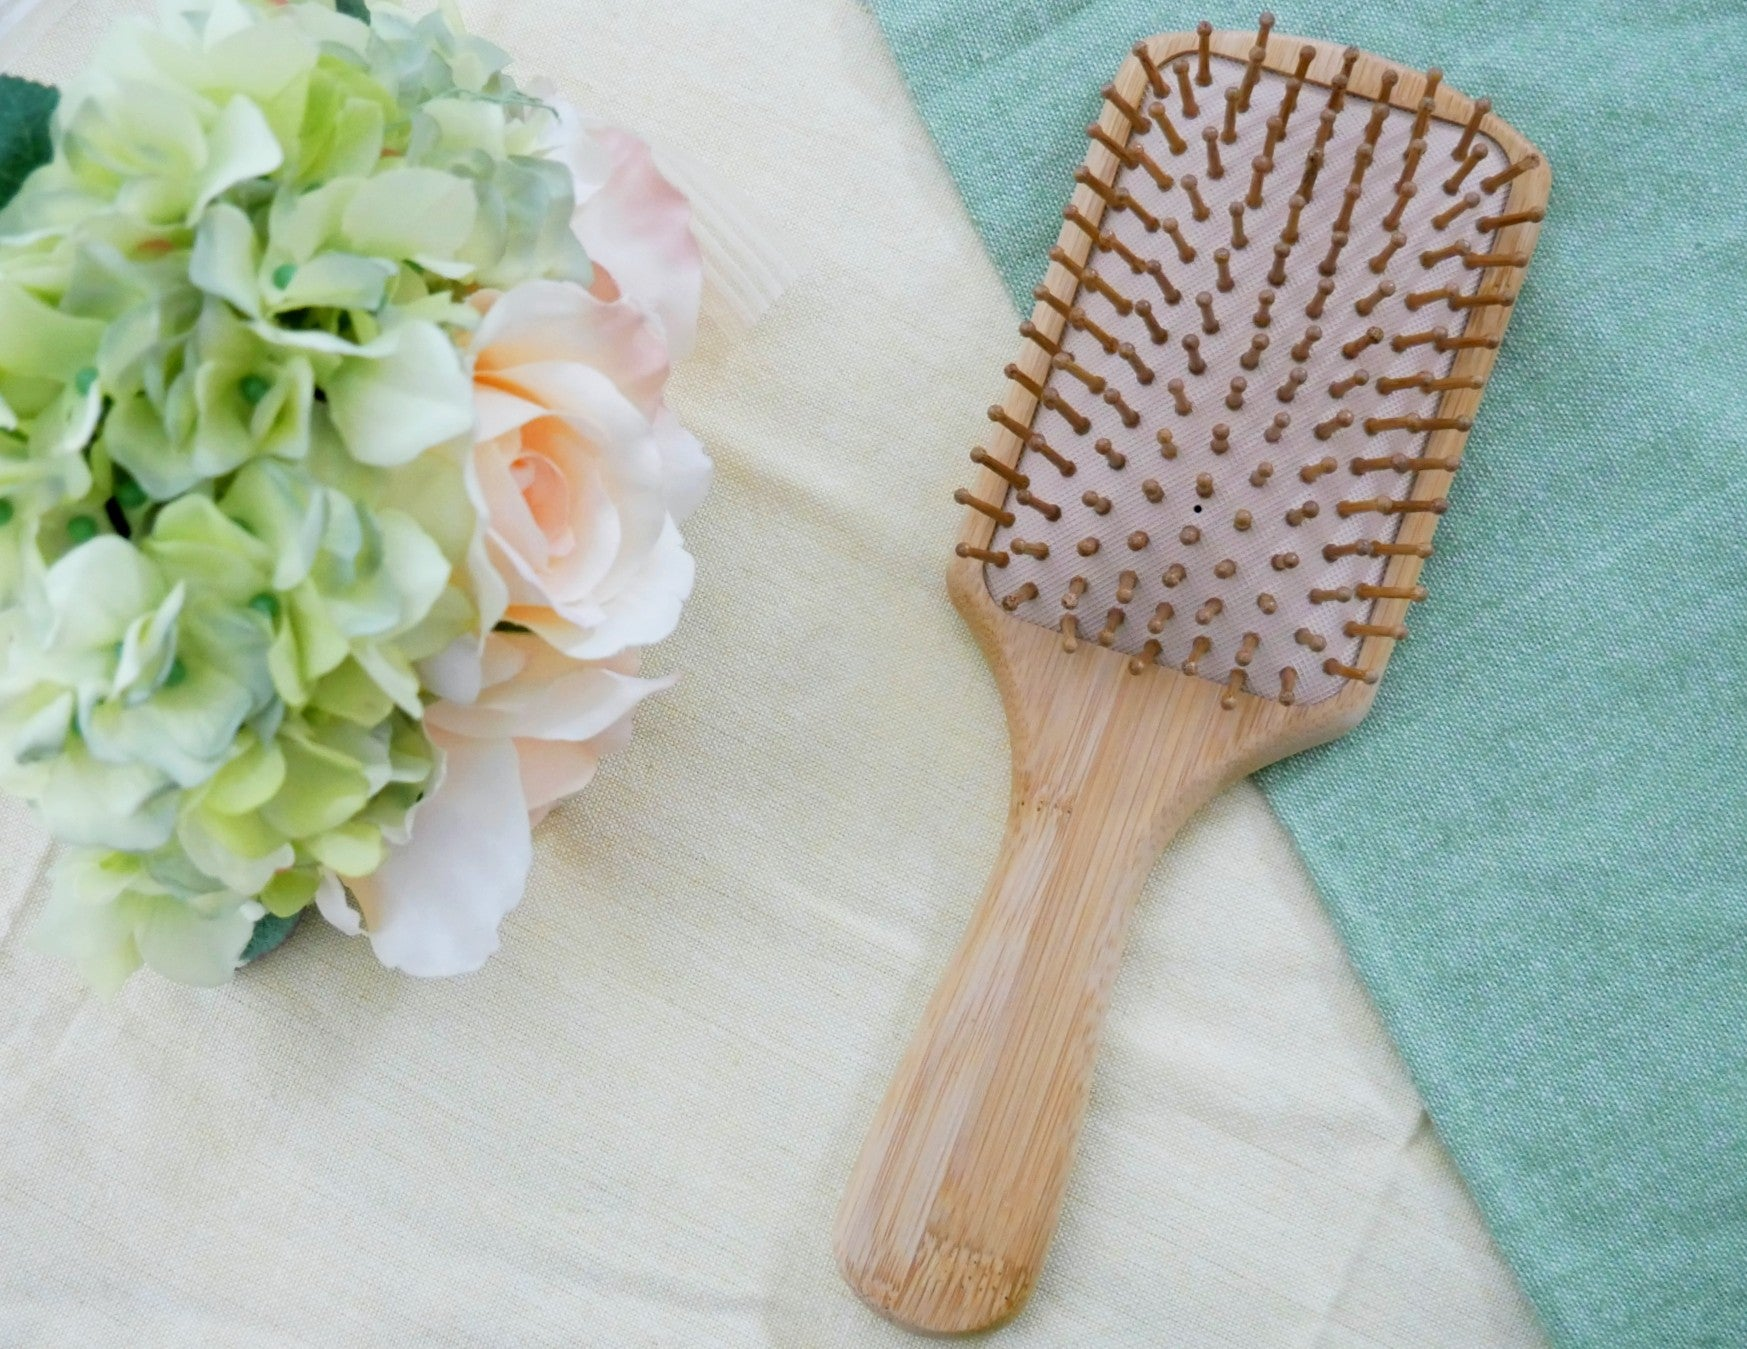 Wood Hairbrush with Bamboo Pins (Rectangular)